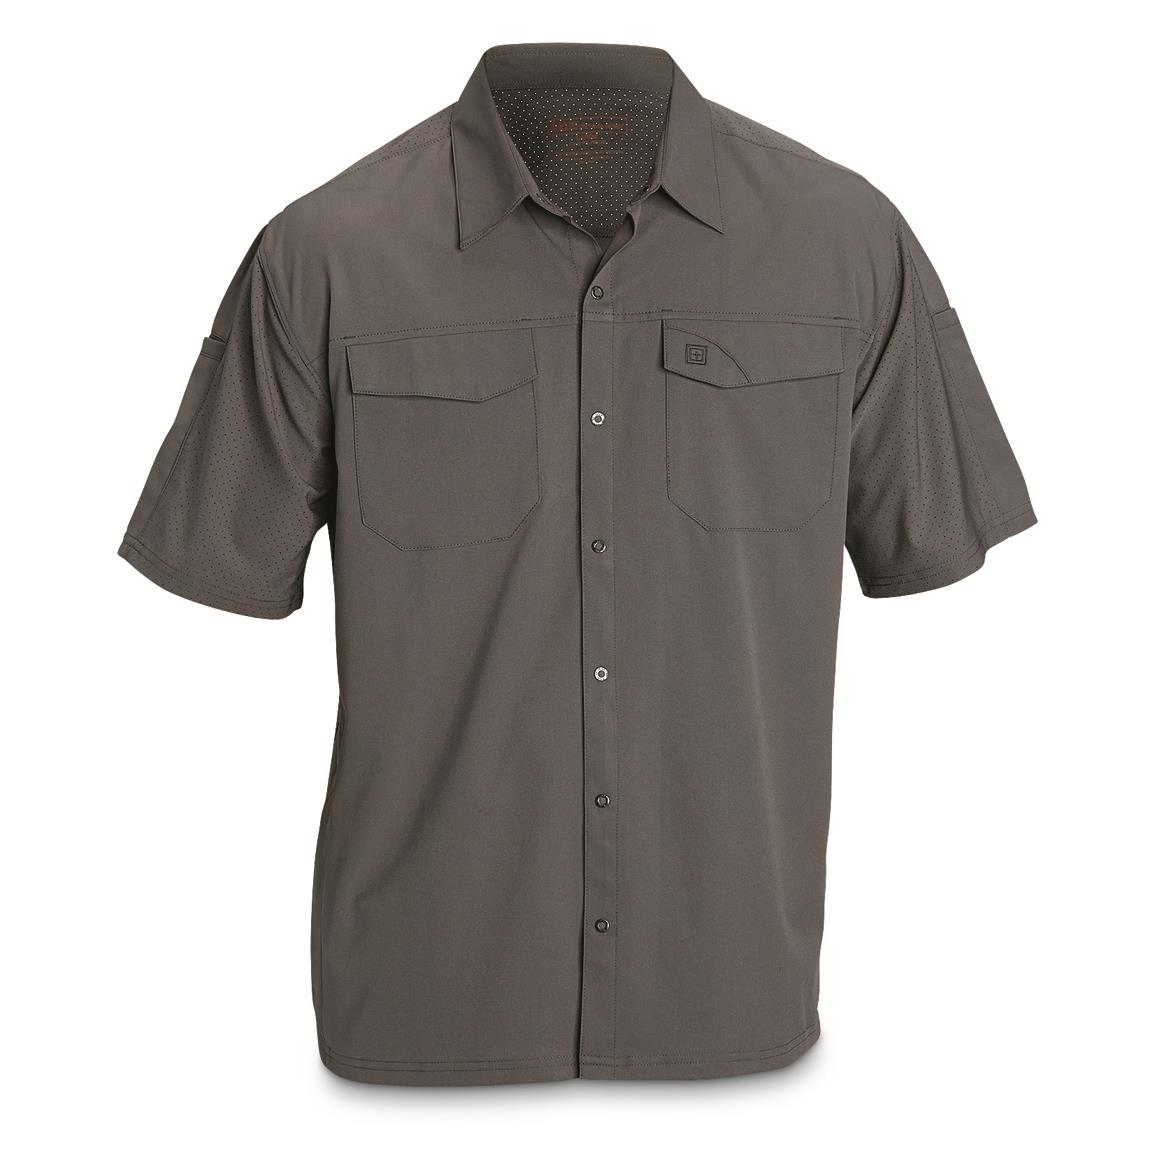 5.11 Tactical Men's Freedom Flex Woven Short-Sleeve Shirt, Storm